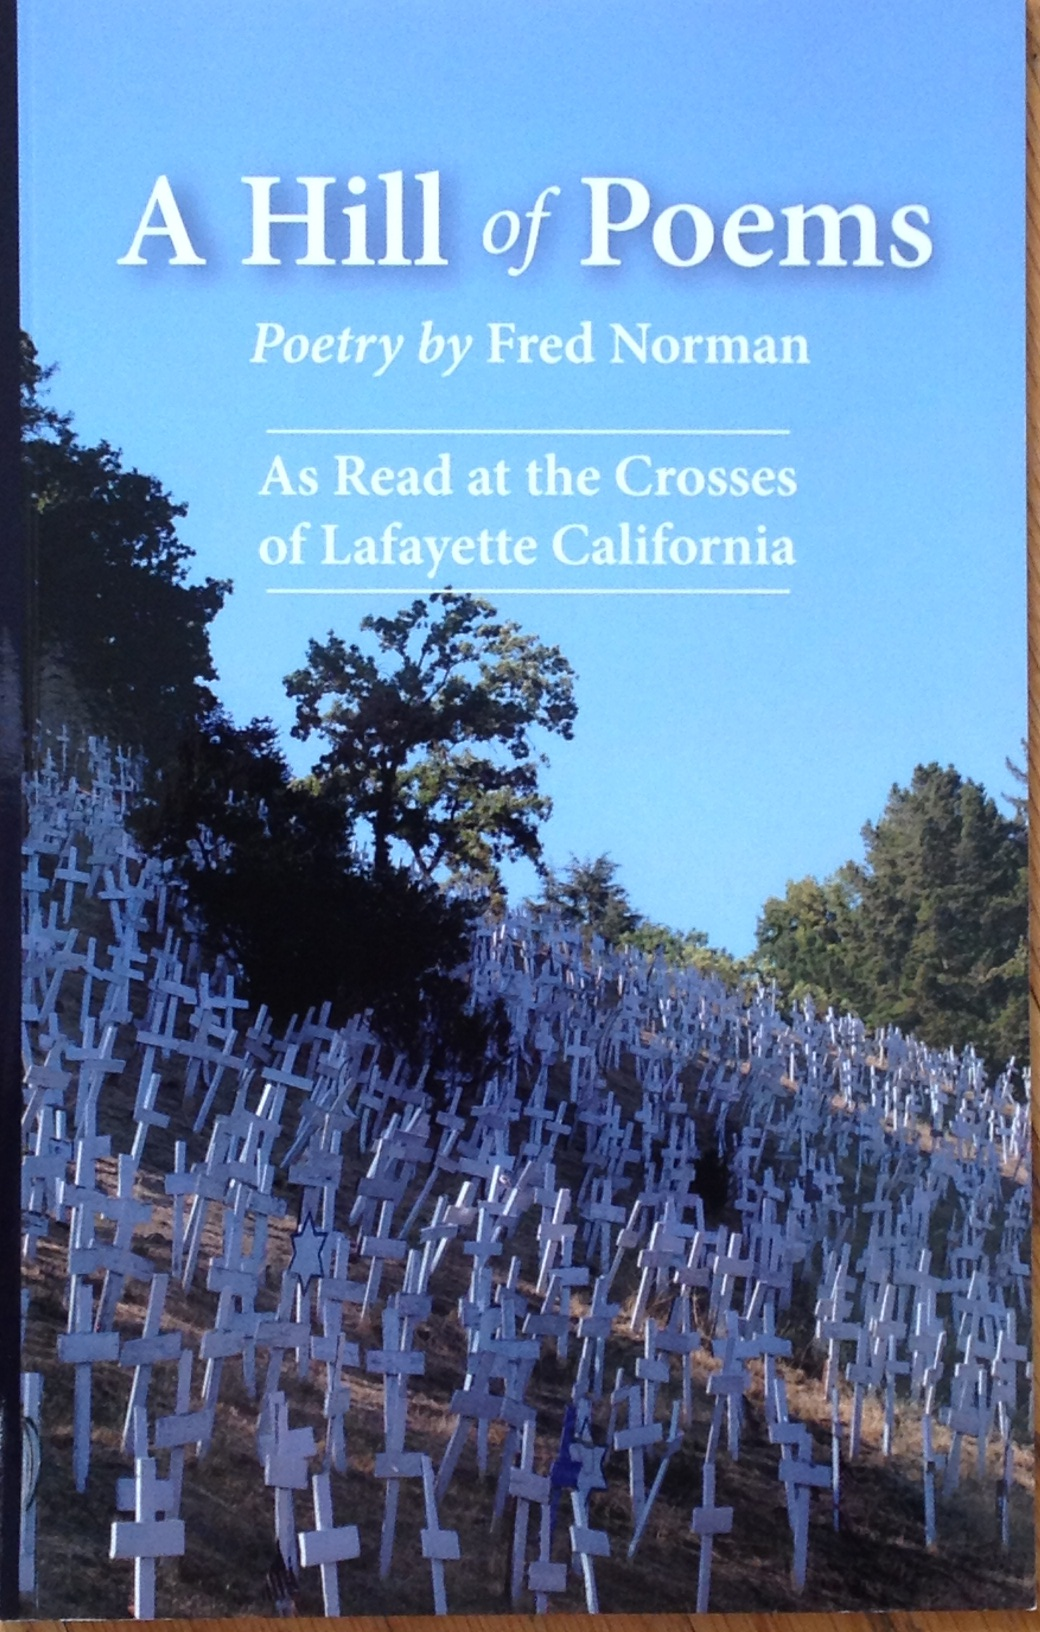 Fred's book cover